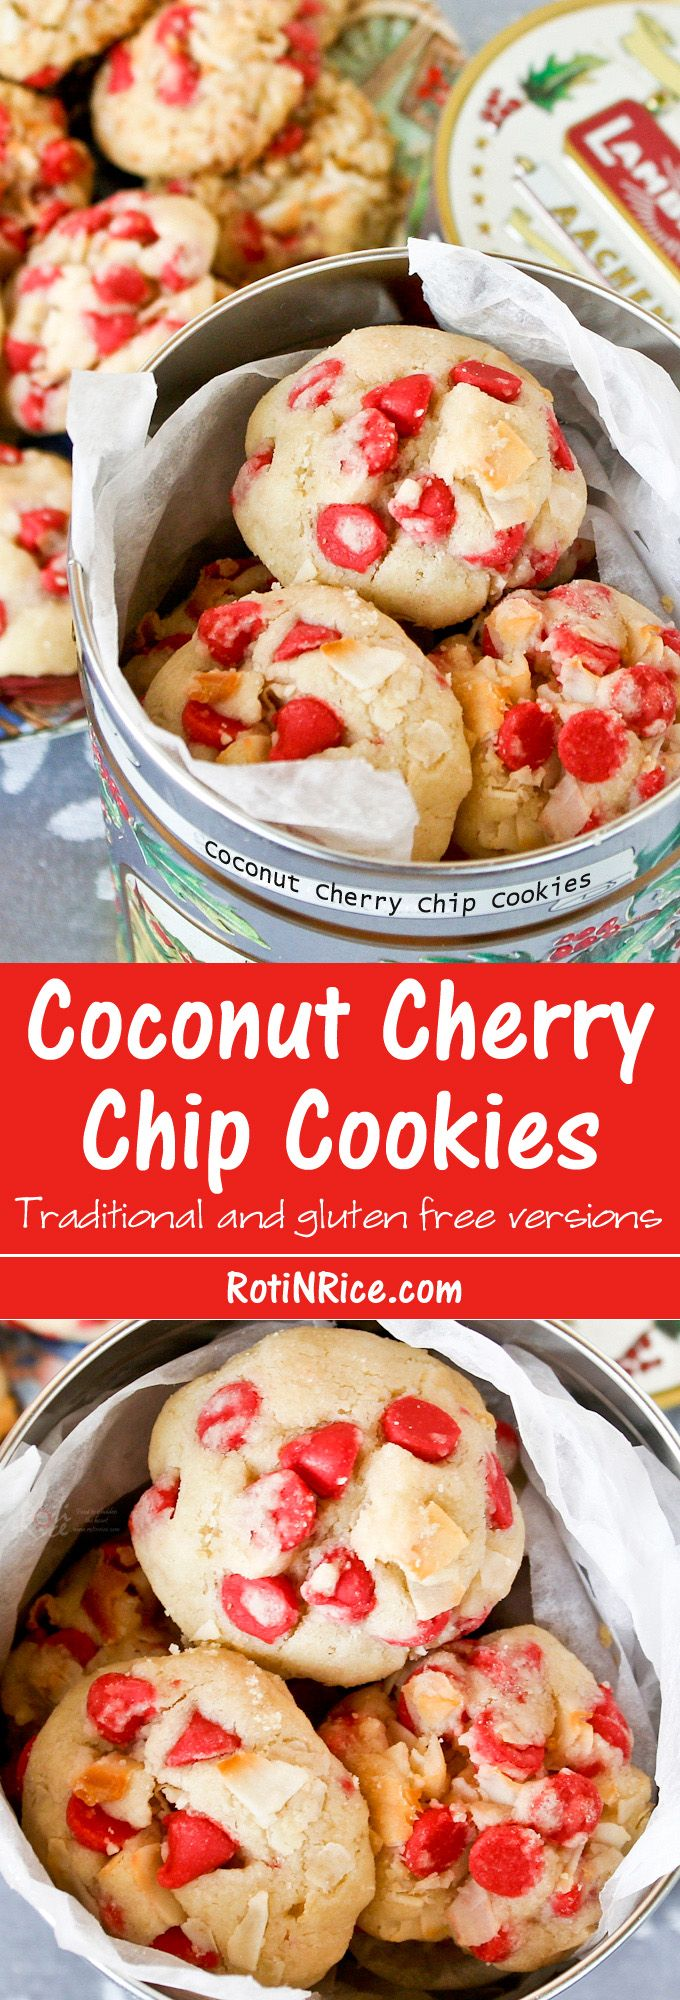 These Coconut Cherry Chip Cookies are so pretty, festive, and irresistibly tasty. They are a gem of a cookie! | RotiNRice.com